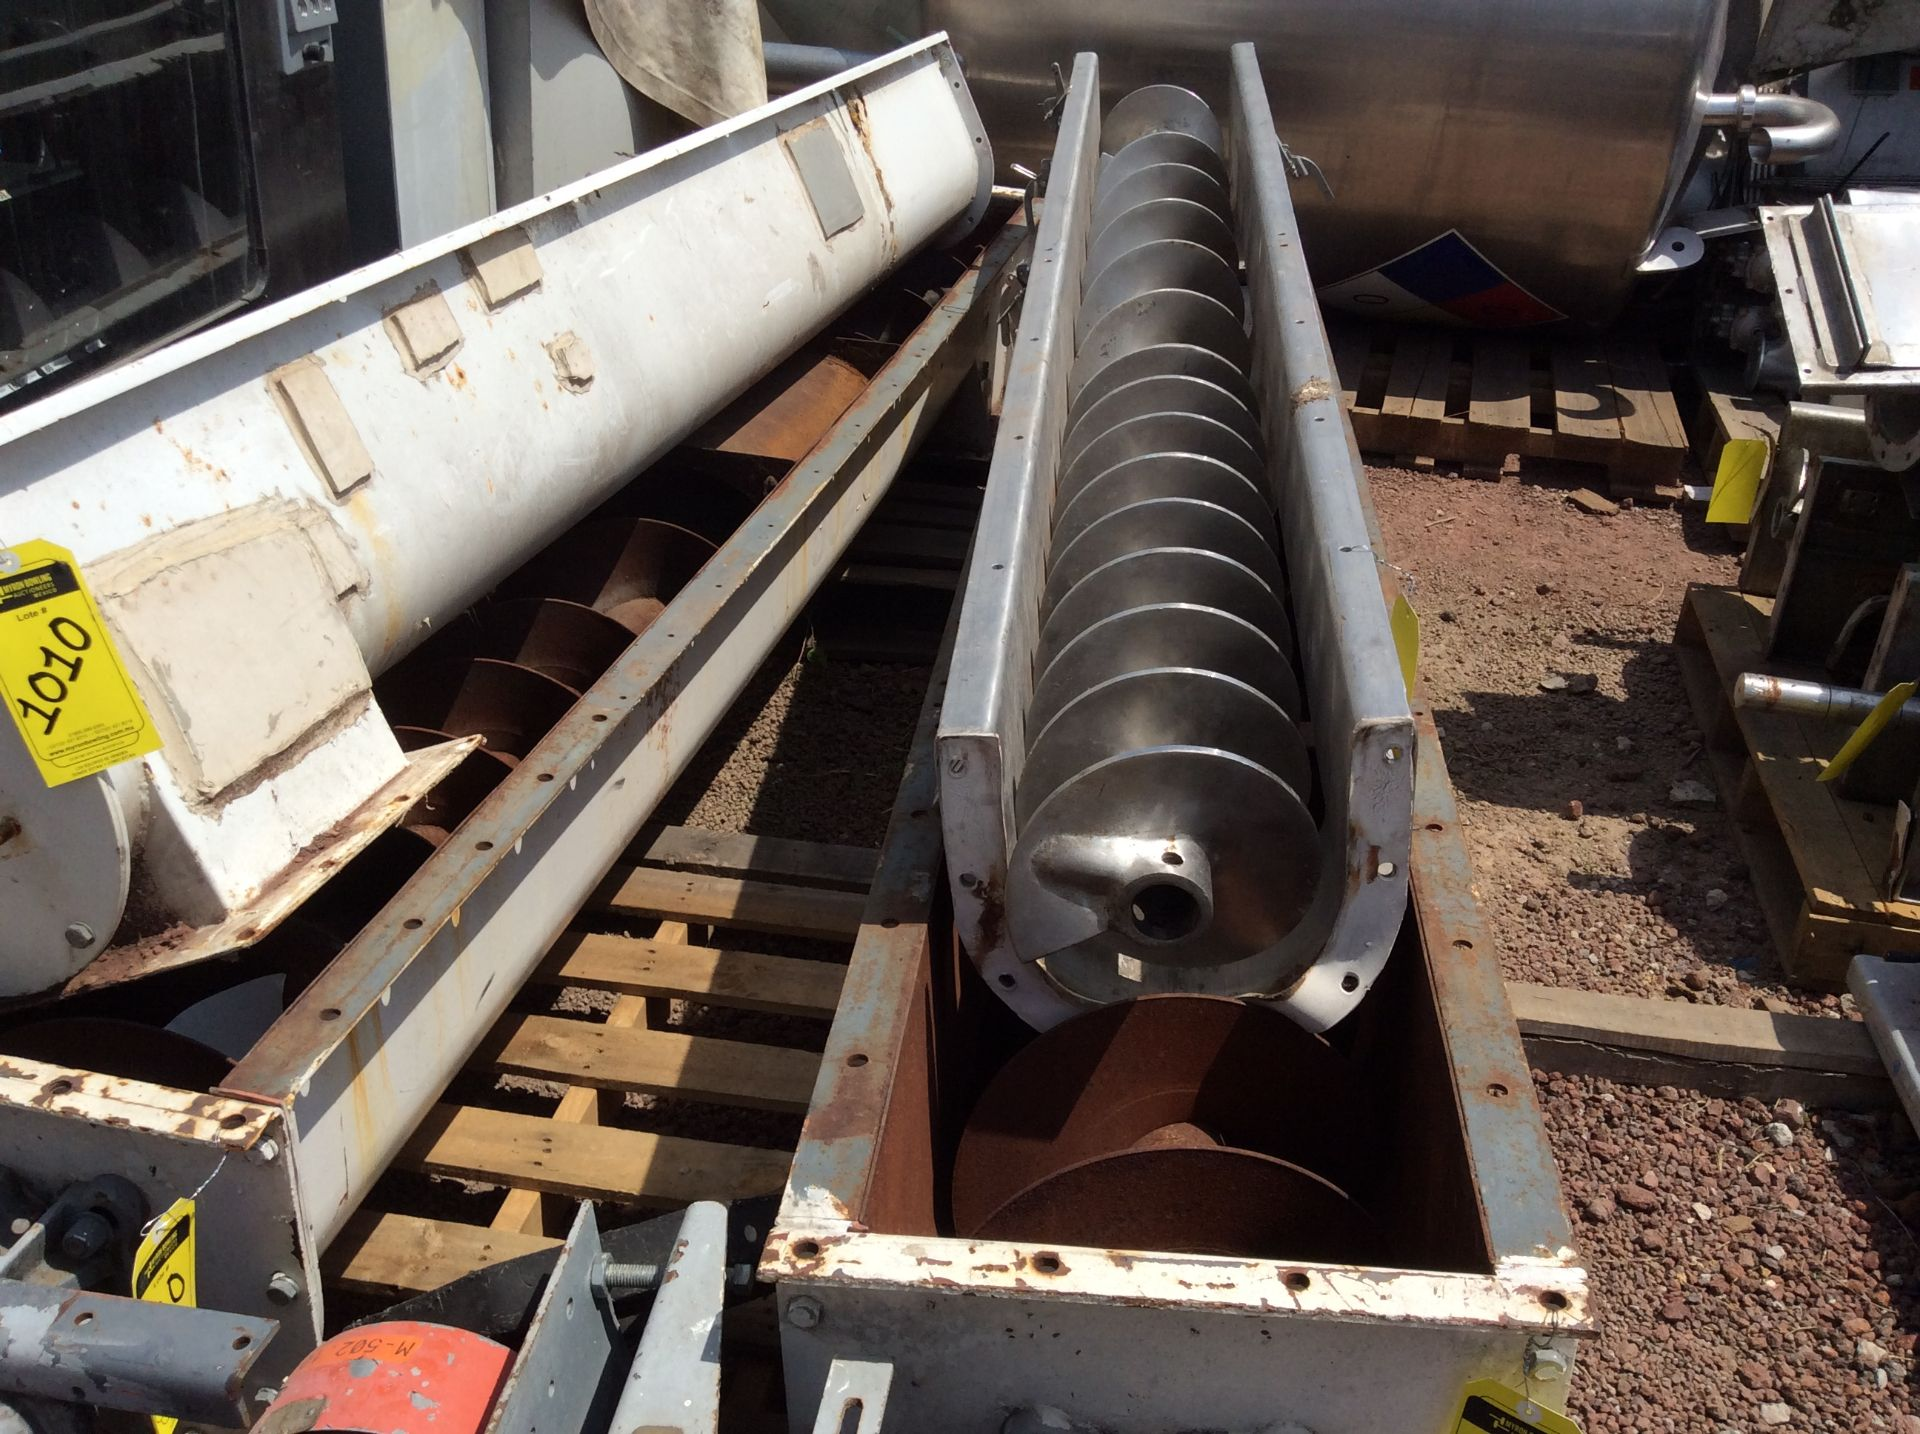 4 helical conveyors, includes 1 geared motor. Please inspect - Image 8 of 11